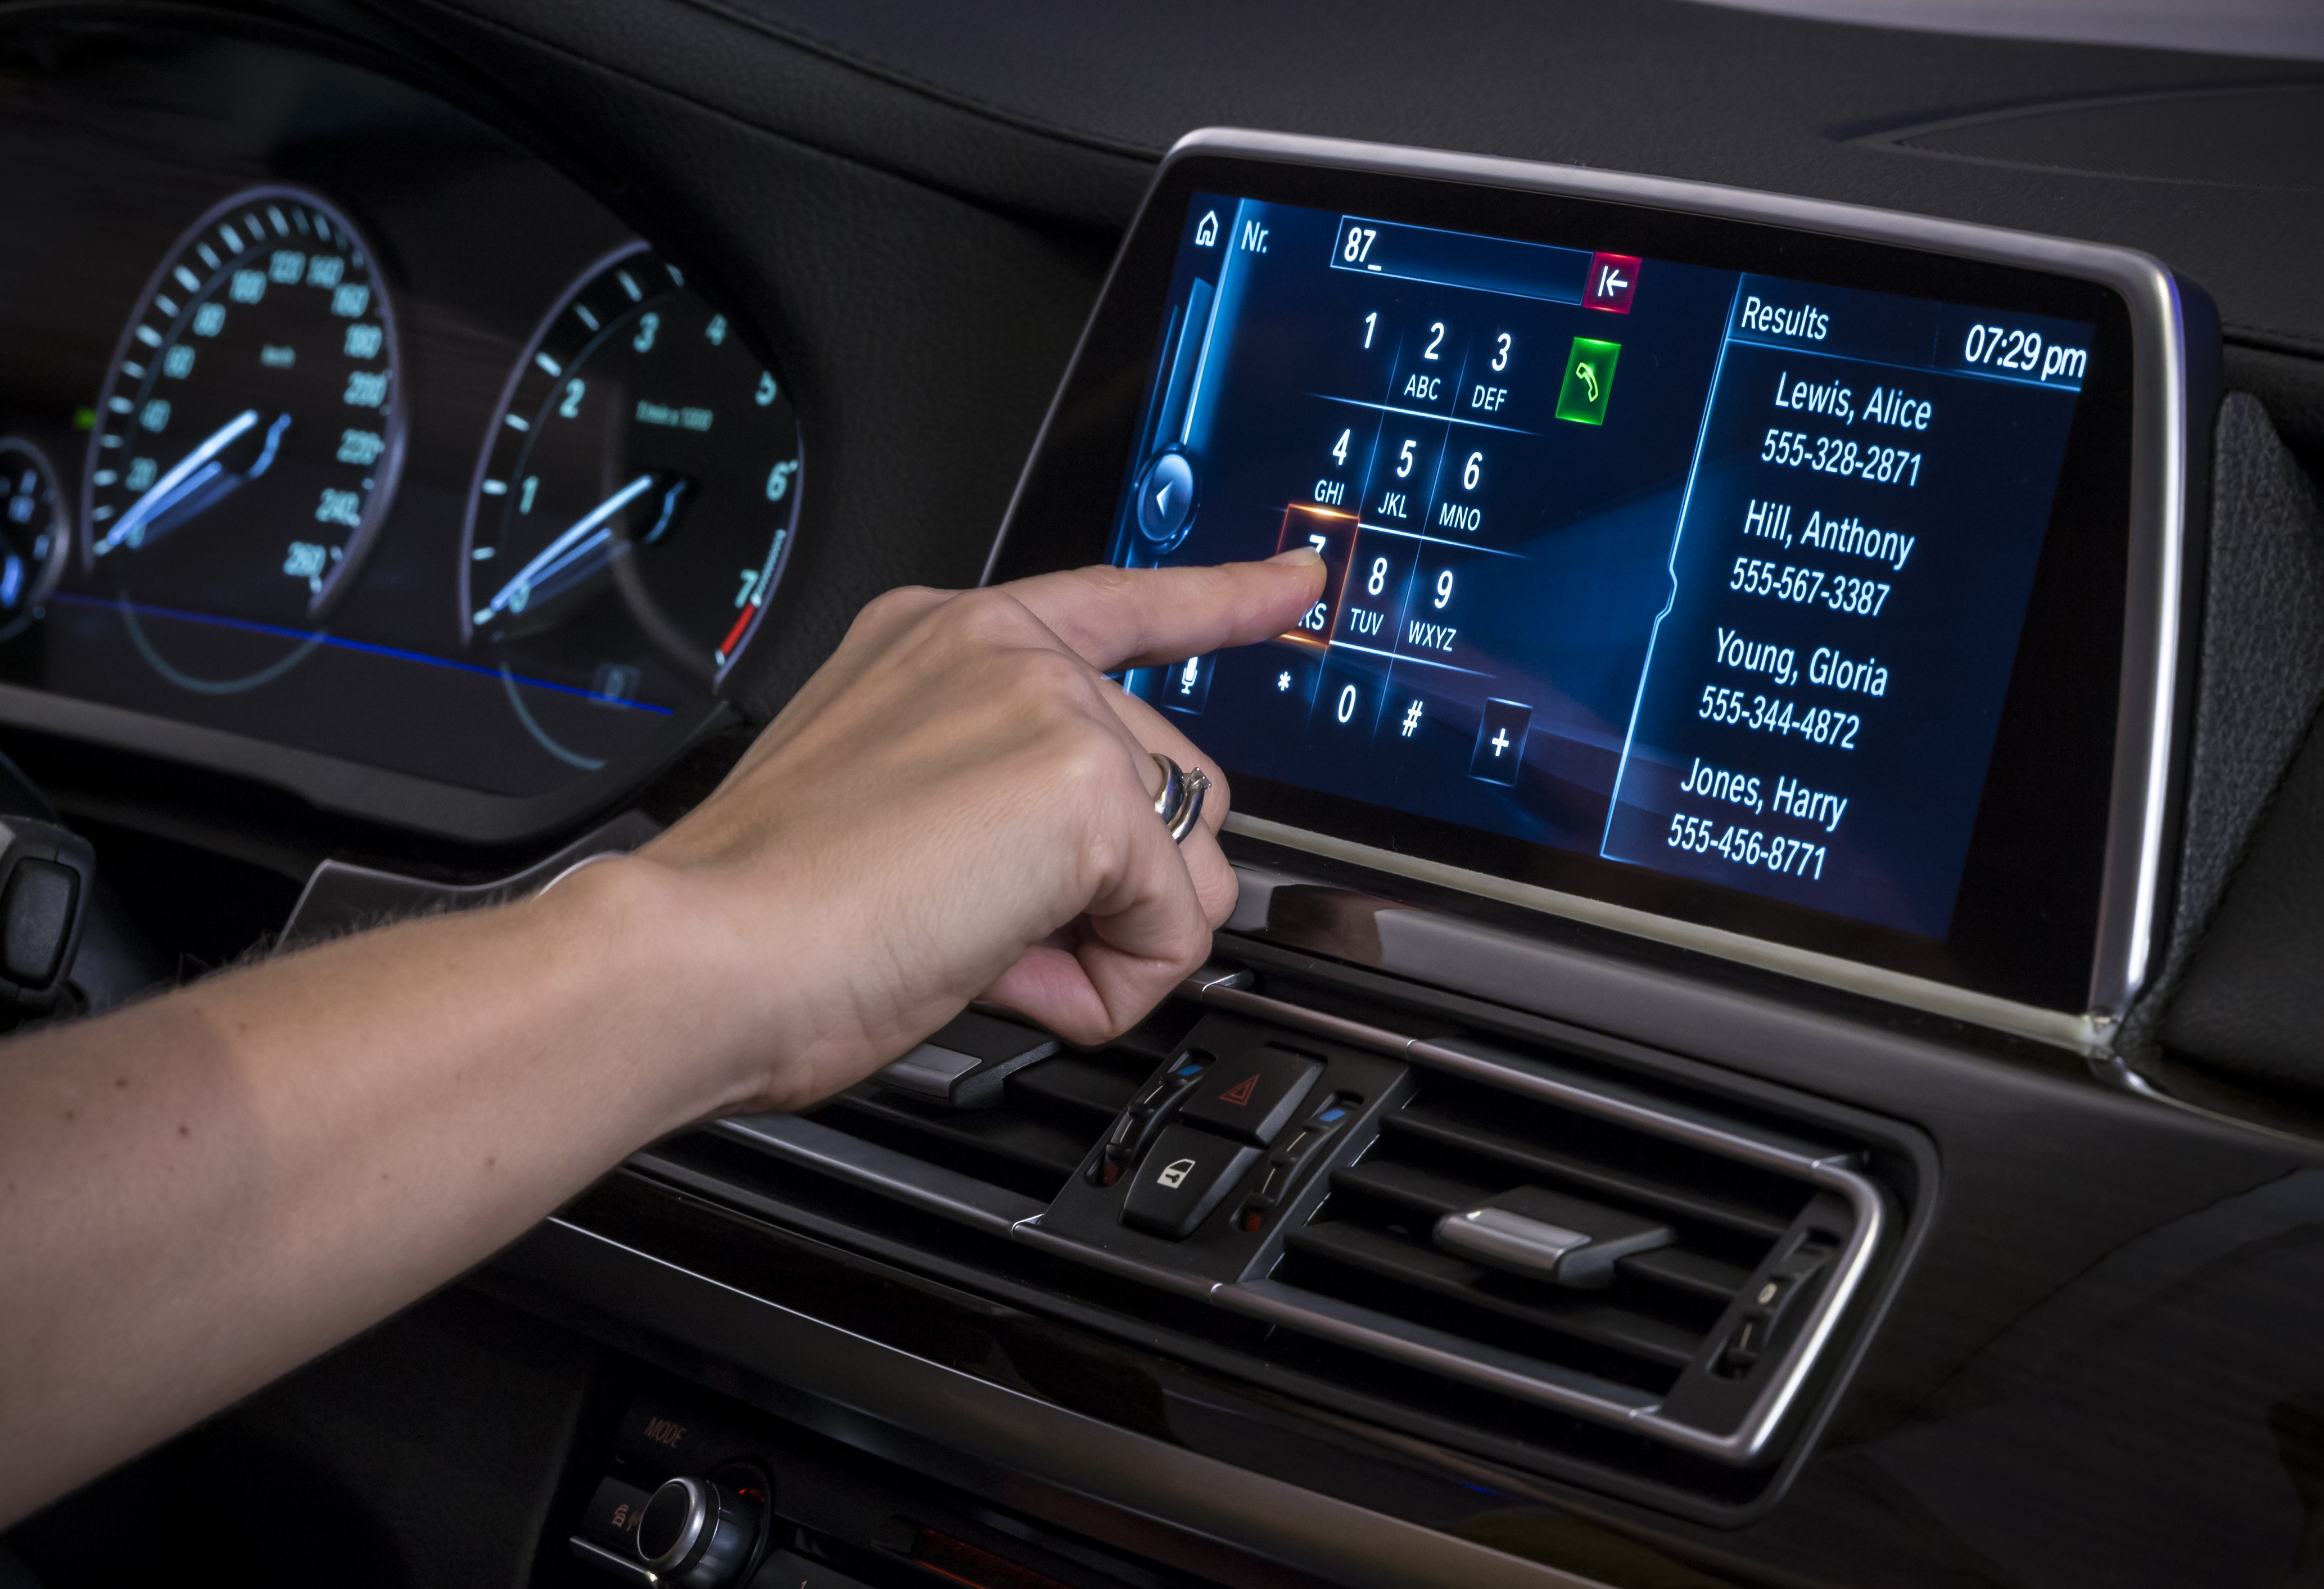 Next Gen Idrive With Gesture Control And Touchscreen Unveiled At Ces Photo Gallery on Bmw 5 Series Battery